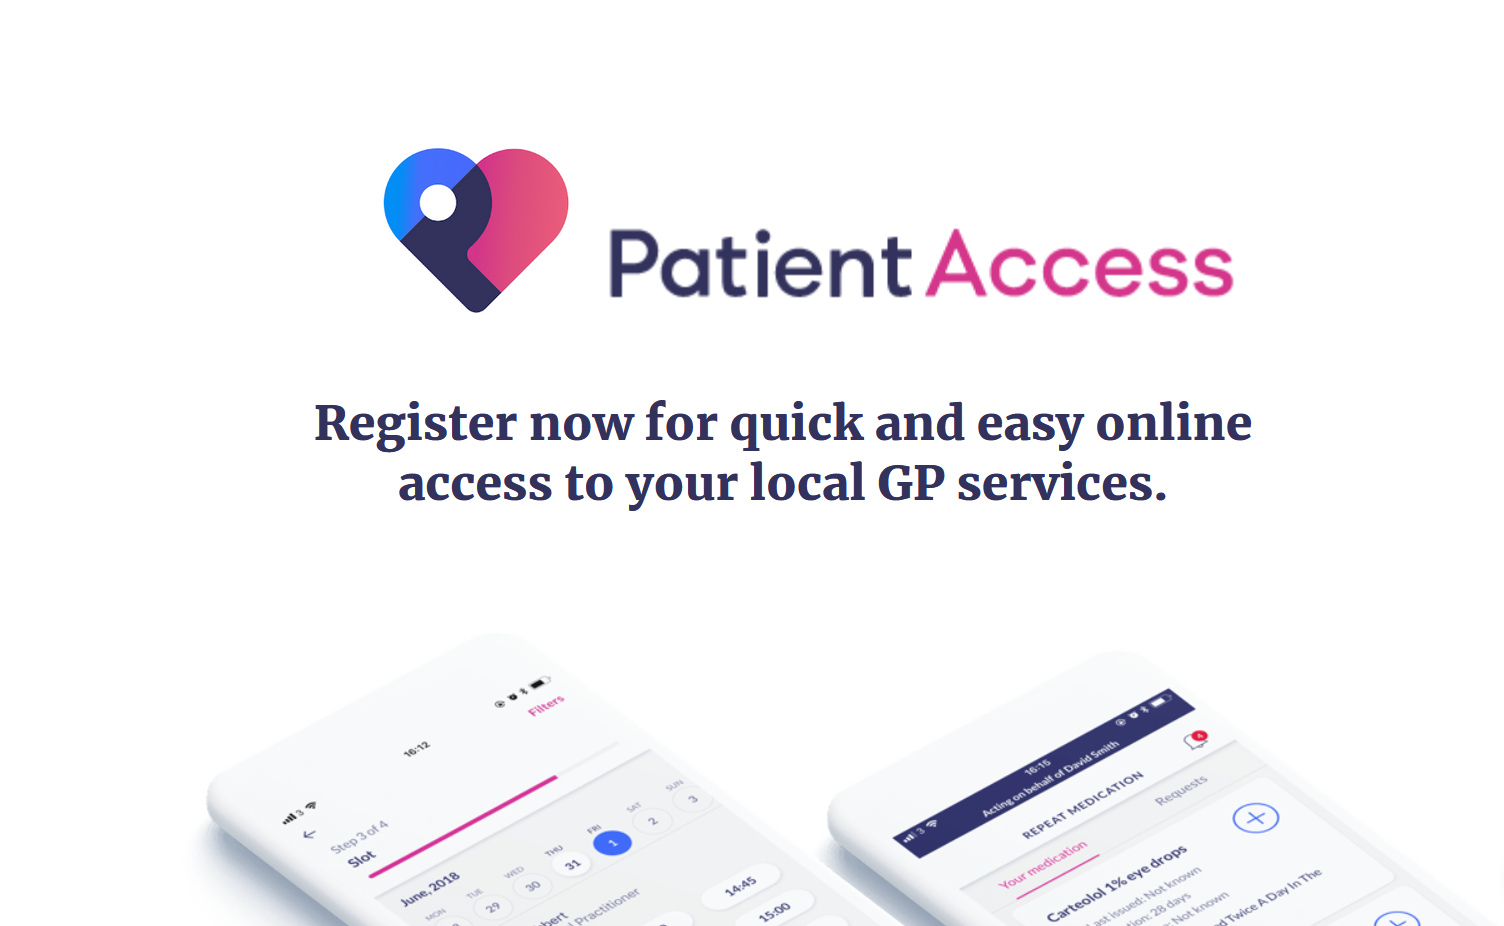 Patient Access. Register now for quick and easy online access